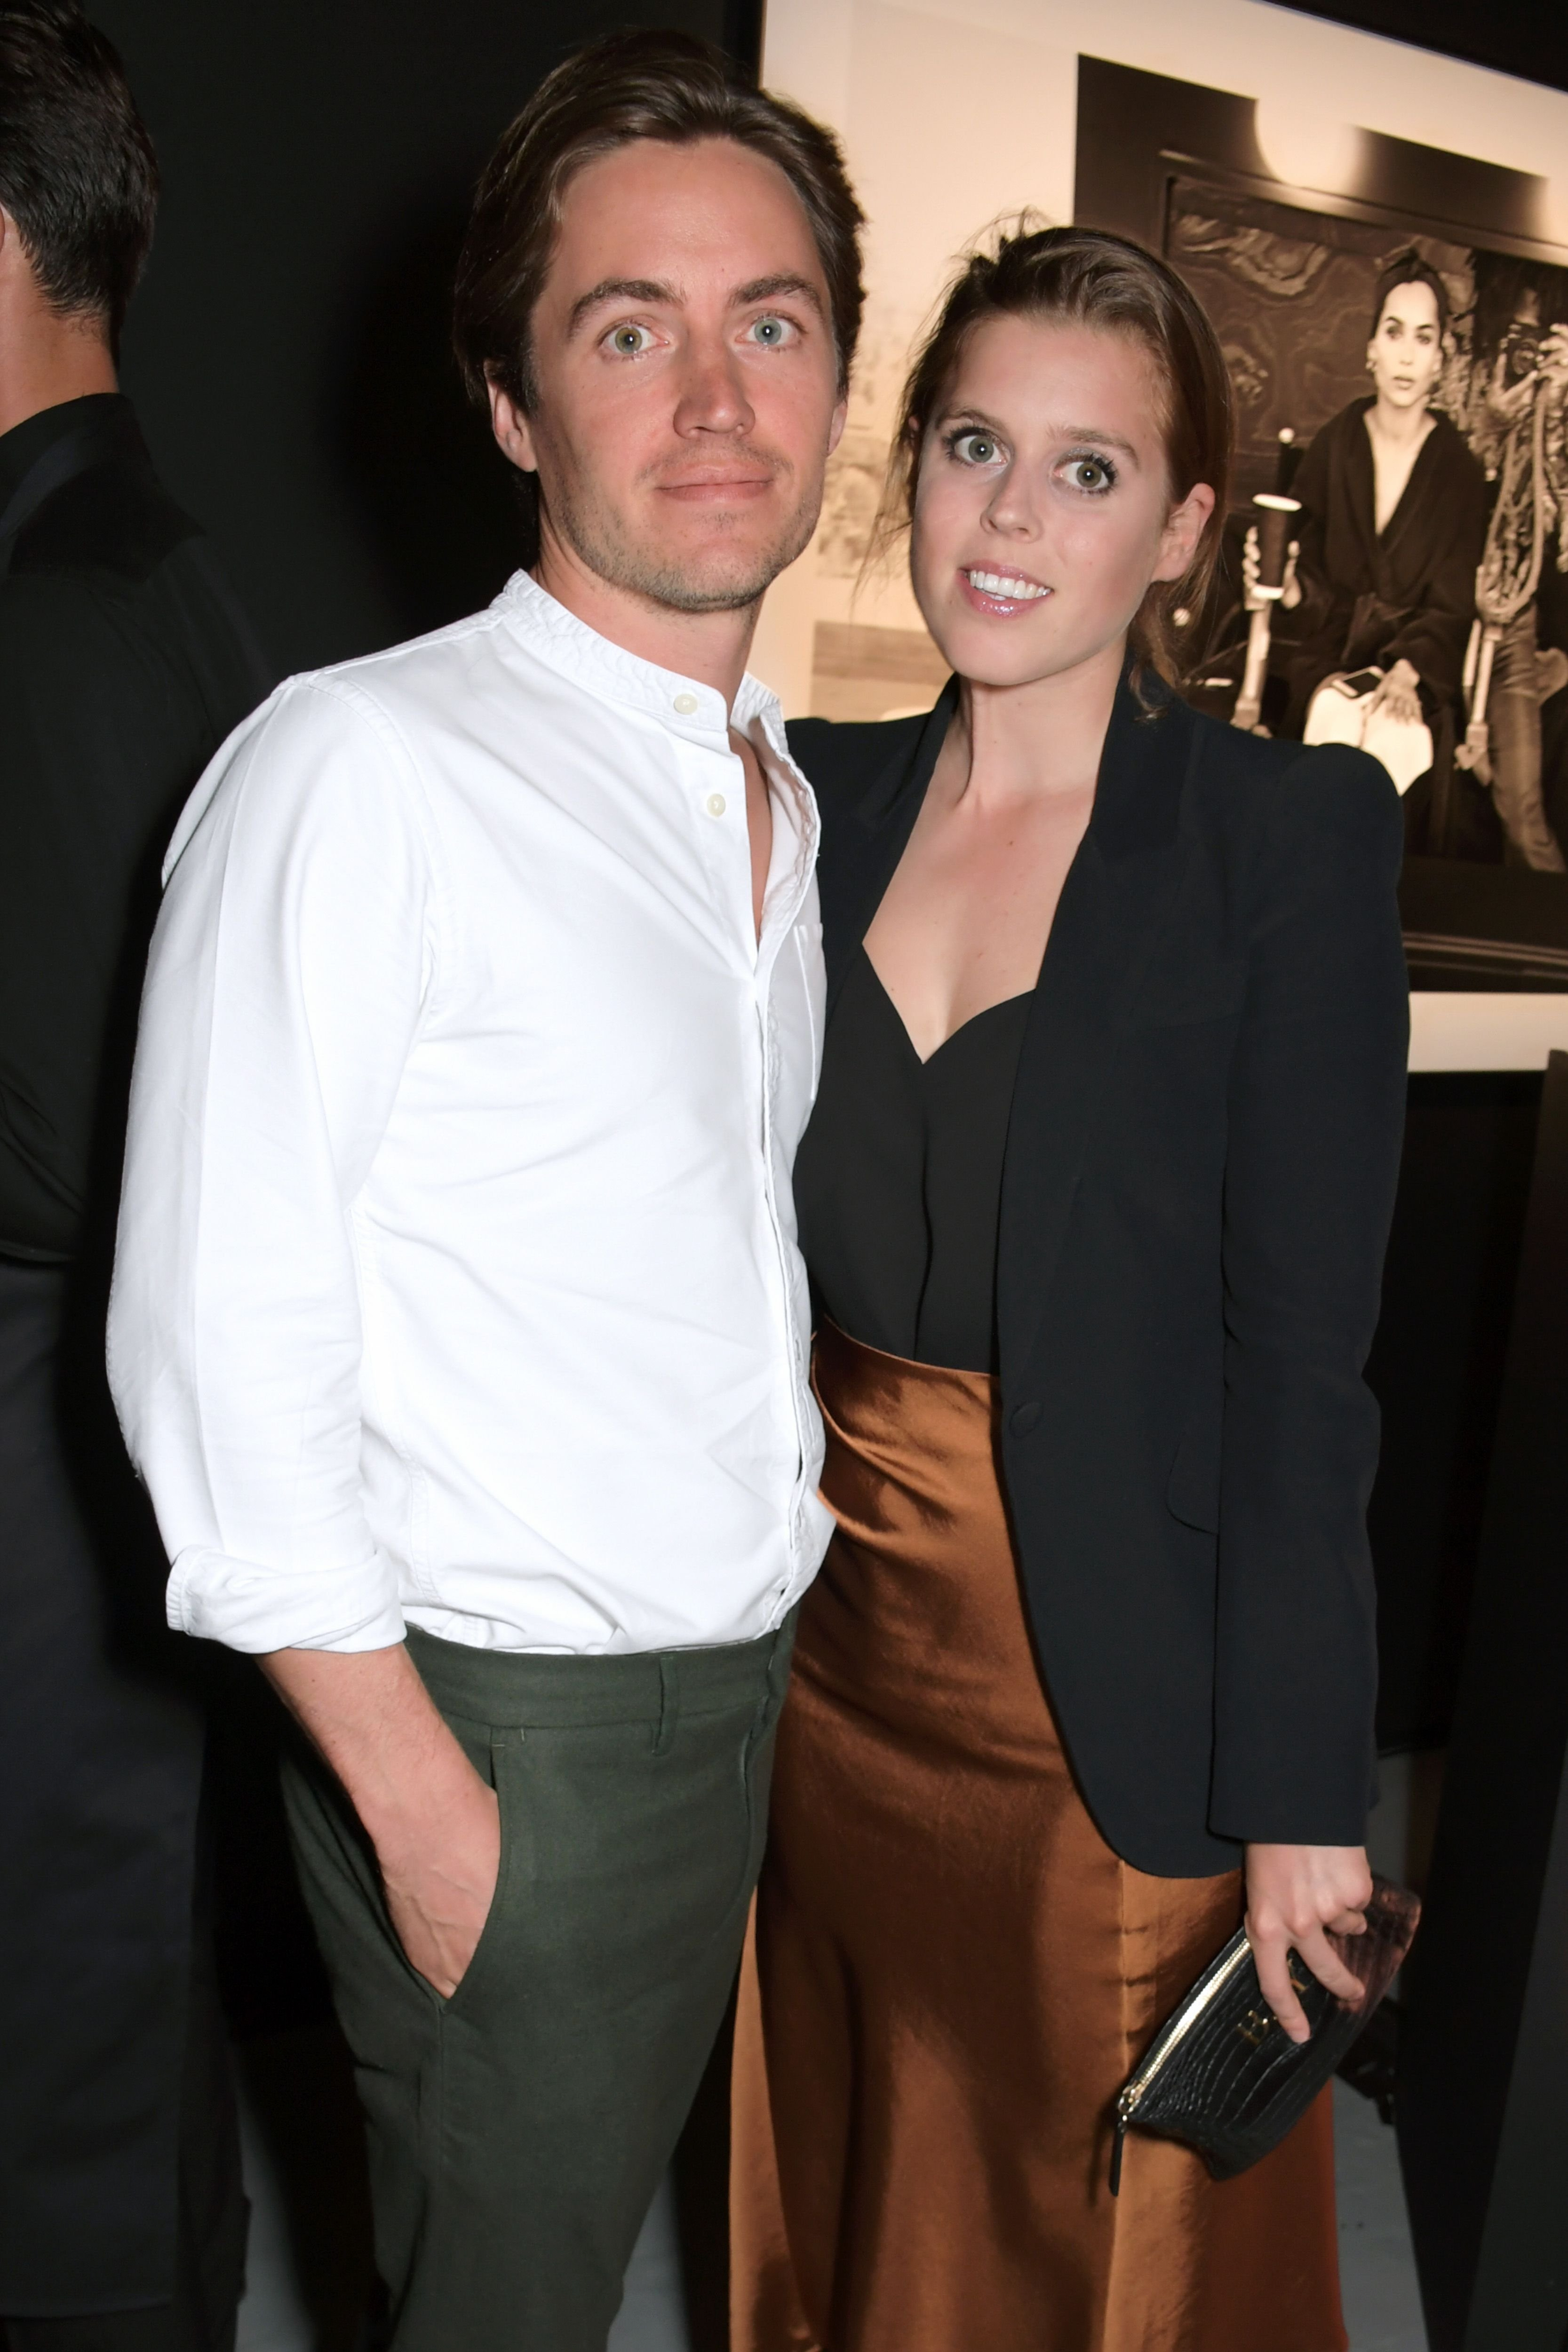 Edoardo Mapelli Mozzi and Princess Beatrice at the Lenny Kravitz & Dom Perignon 'Assemblage' exhibition in London, England | Photo: David M. Benett/Getty Images